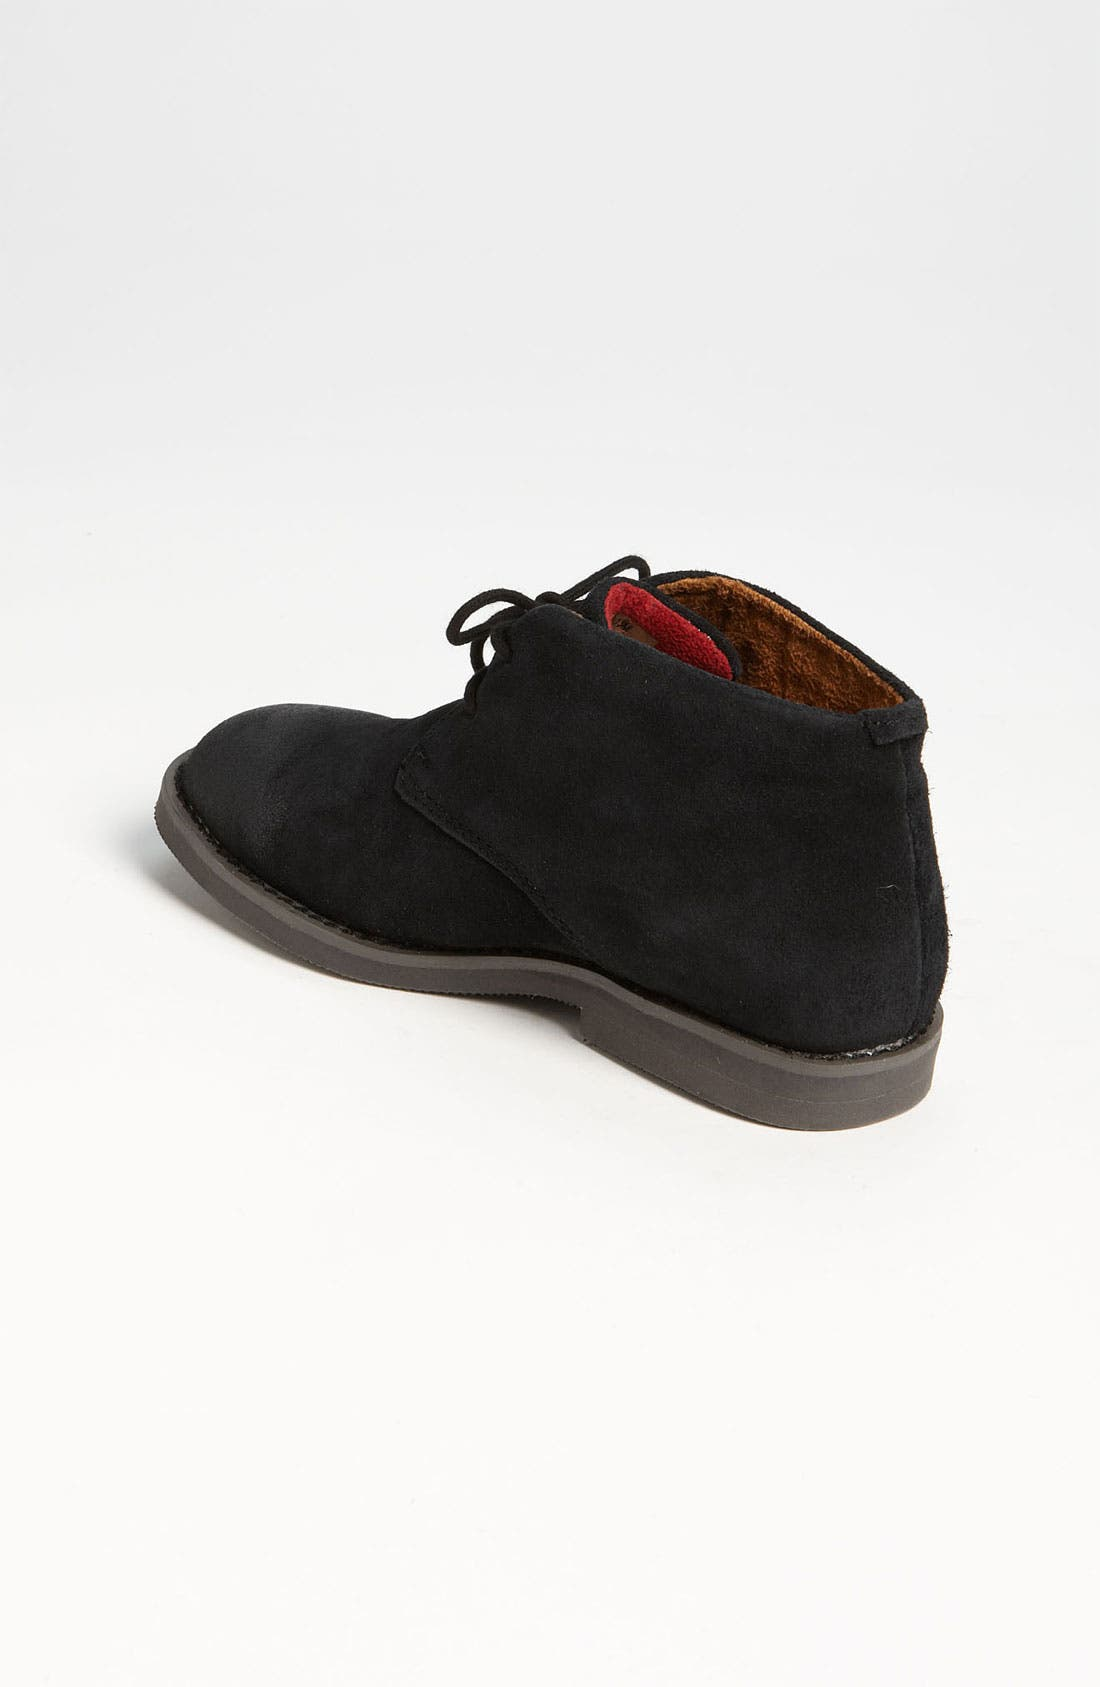 Alternate Image 2  - Florsheim 'Quinlan' Chukka Boot (Toddler, Little Kid & Big Kid)